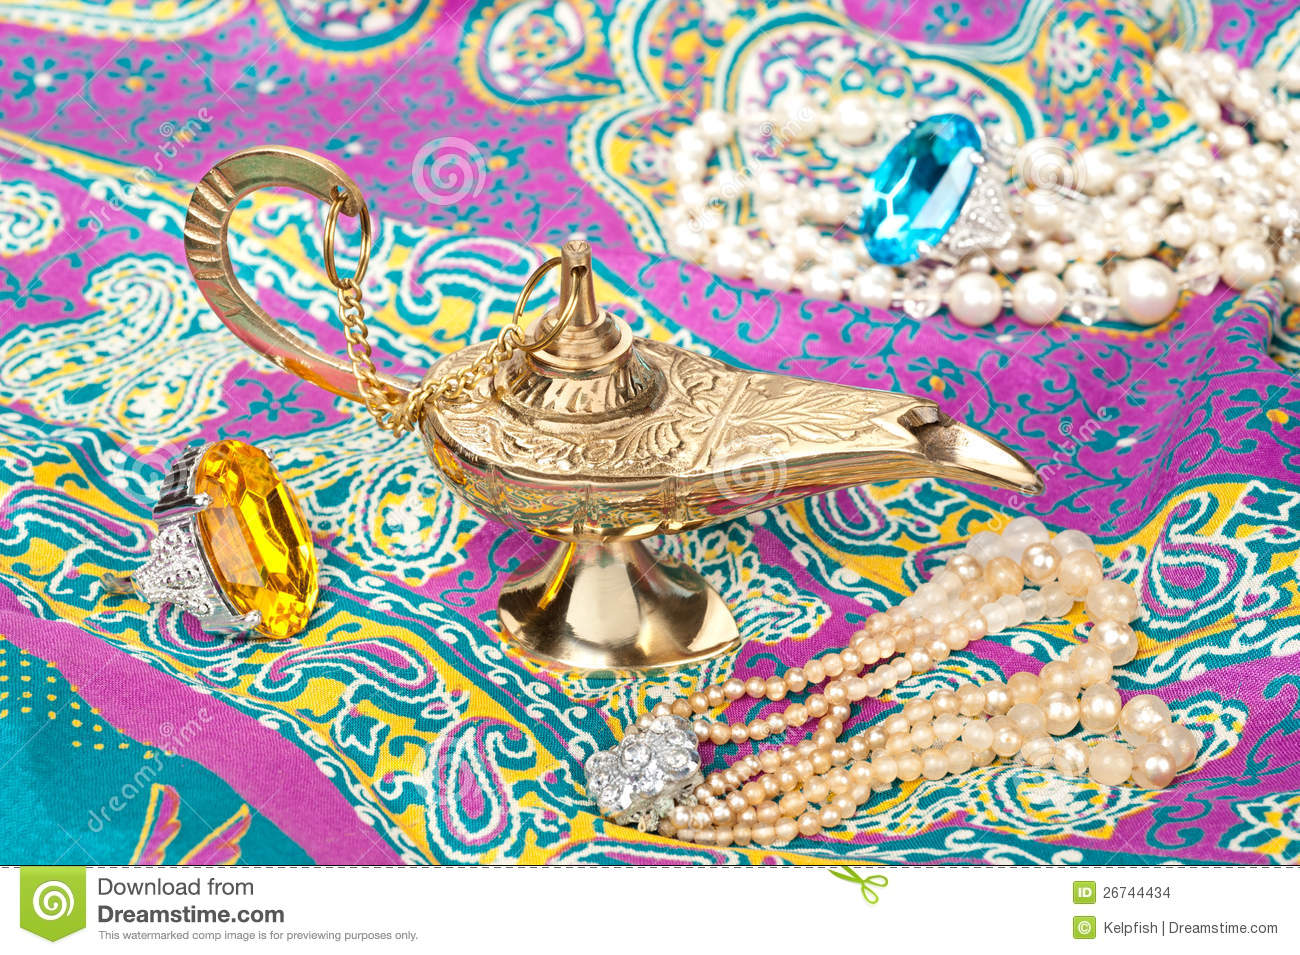 12270e6ced9 A magic oil lamp on top of gypsy clothing and surrounded by jewelry.